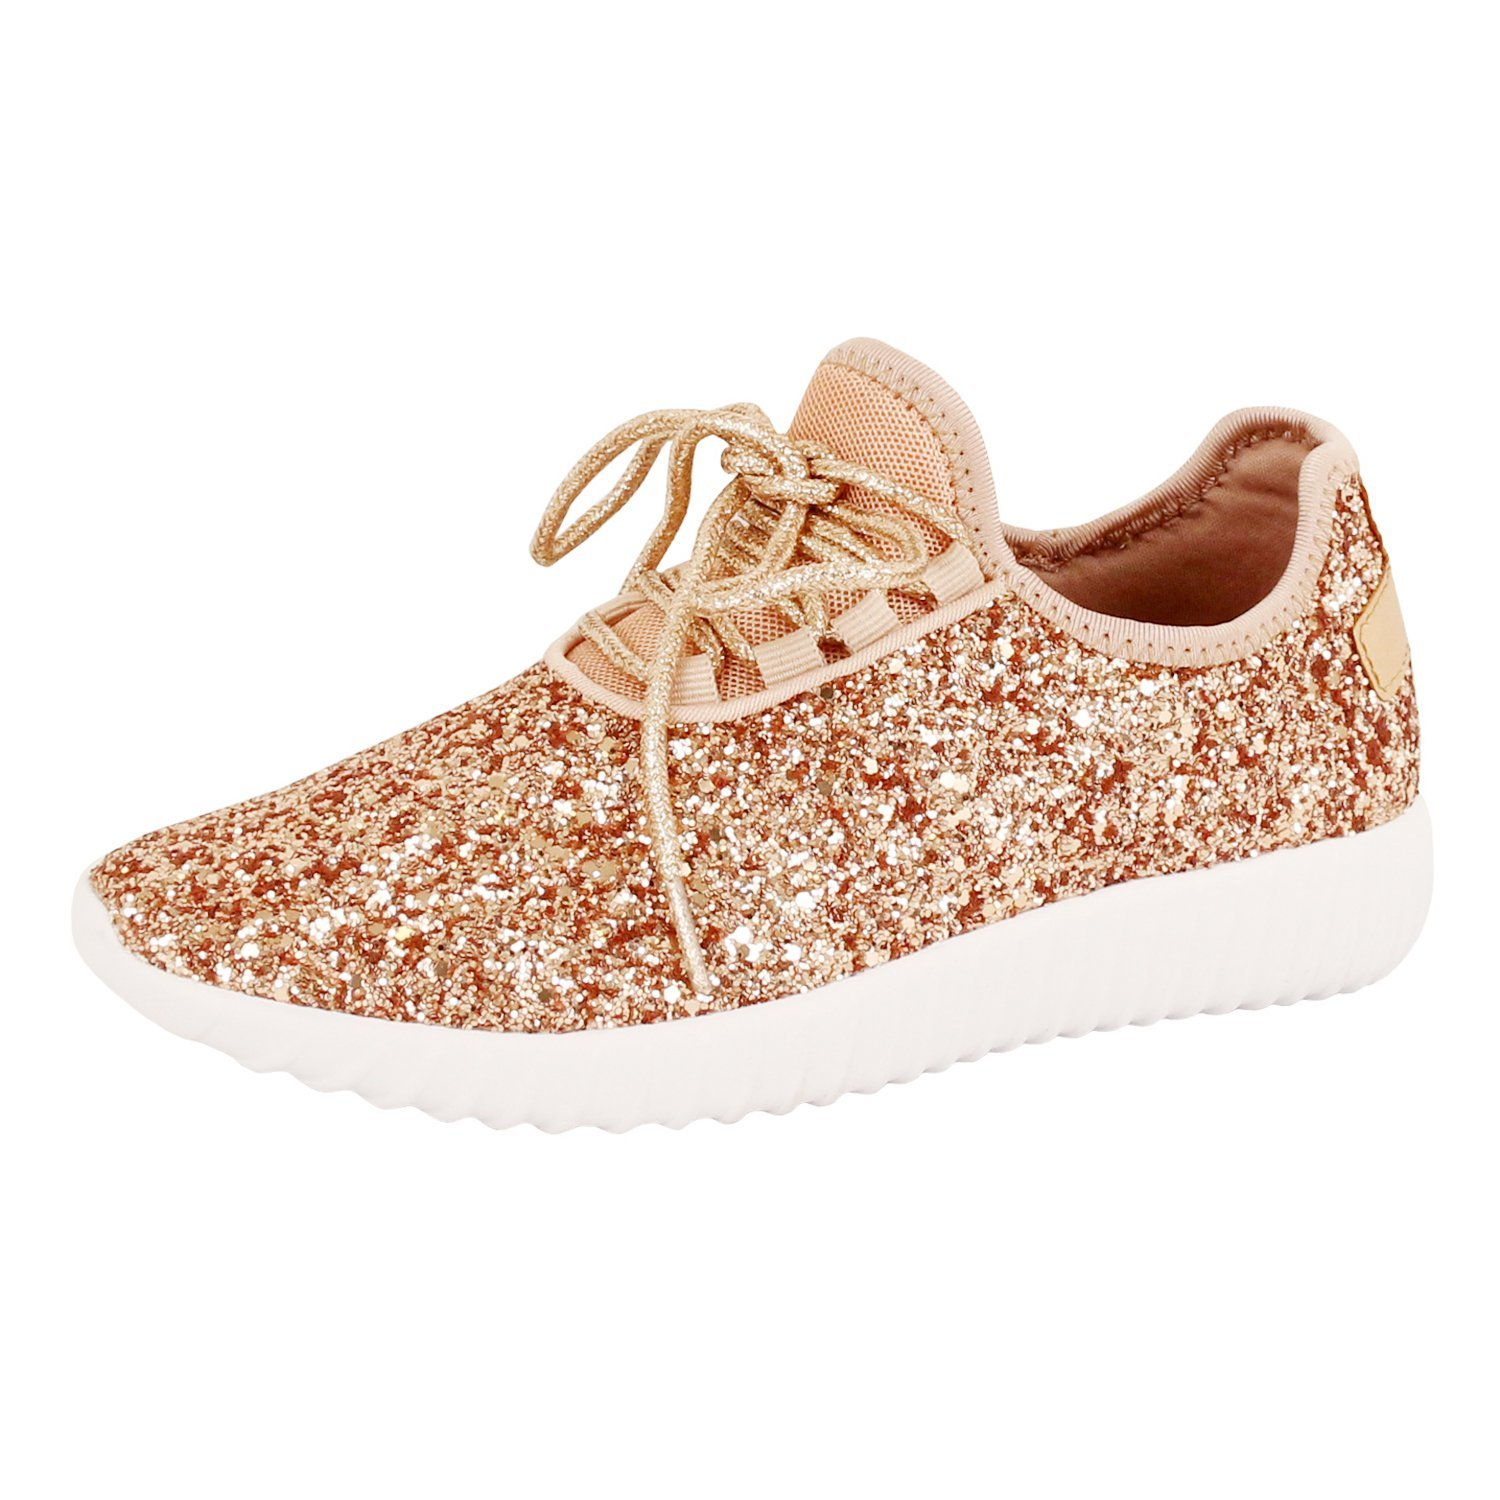 9903aa8af2a4 Get Quotations · Guilty Shoes Womens Fashion Glitter Metallic Lace Up  Sparkle Slip On - Wedge Platform Sneaker